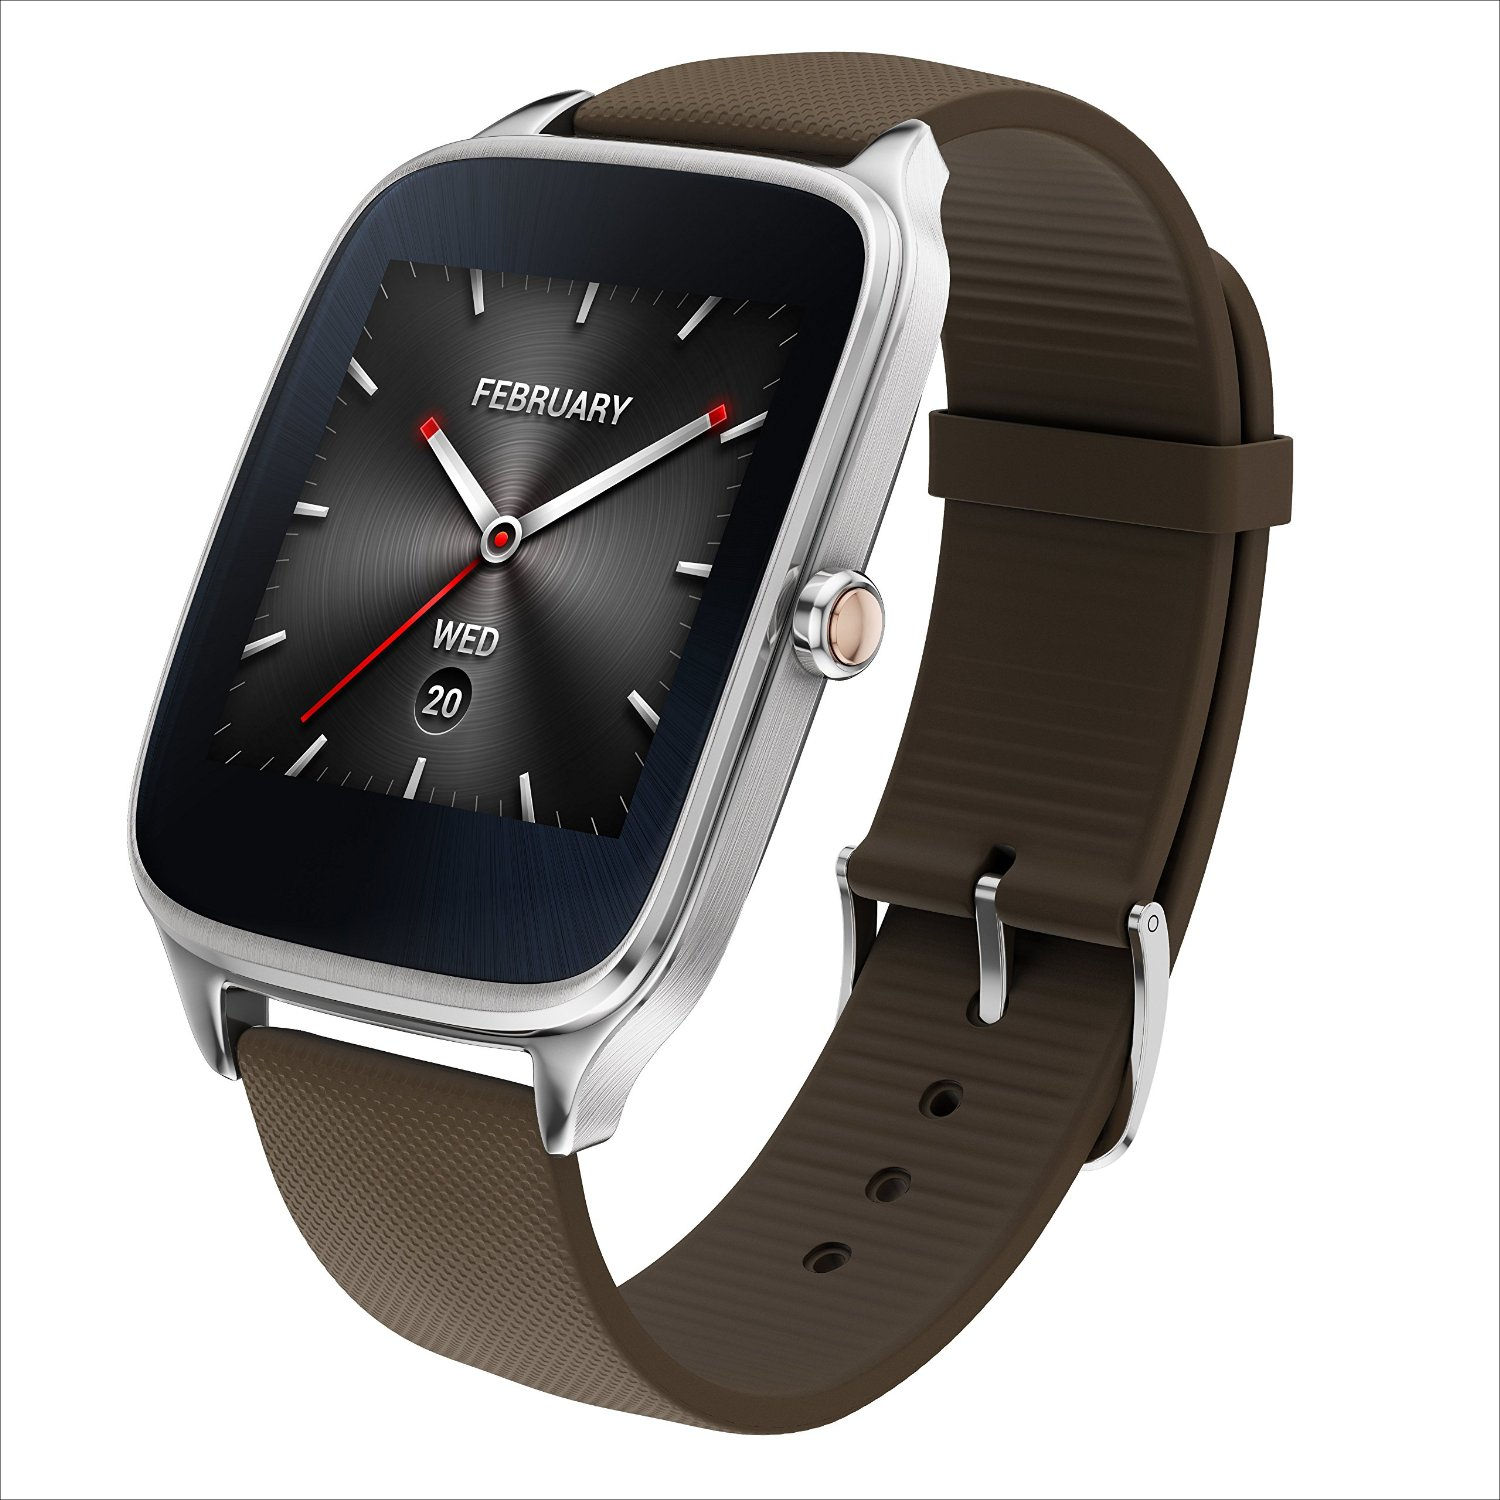 24+ Smart Watch Designs, Models